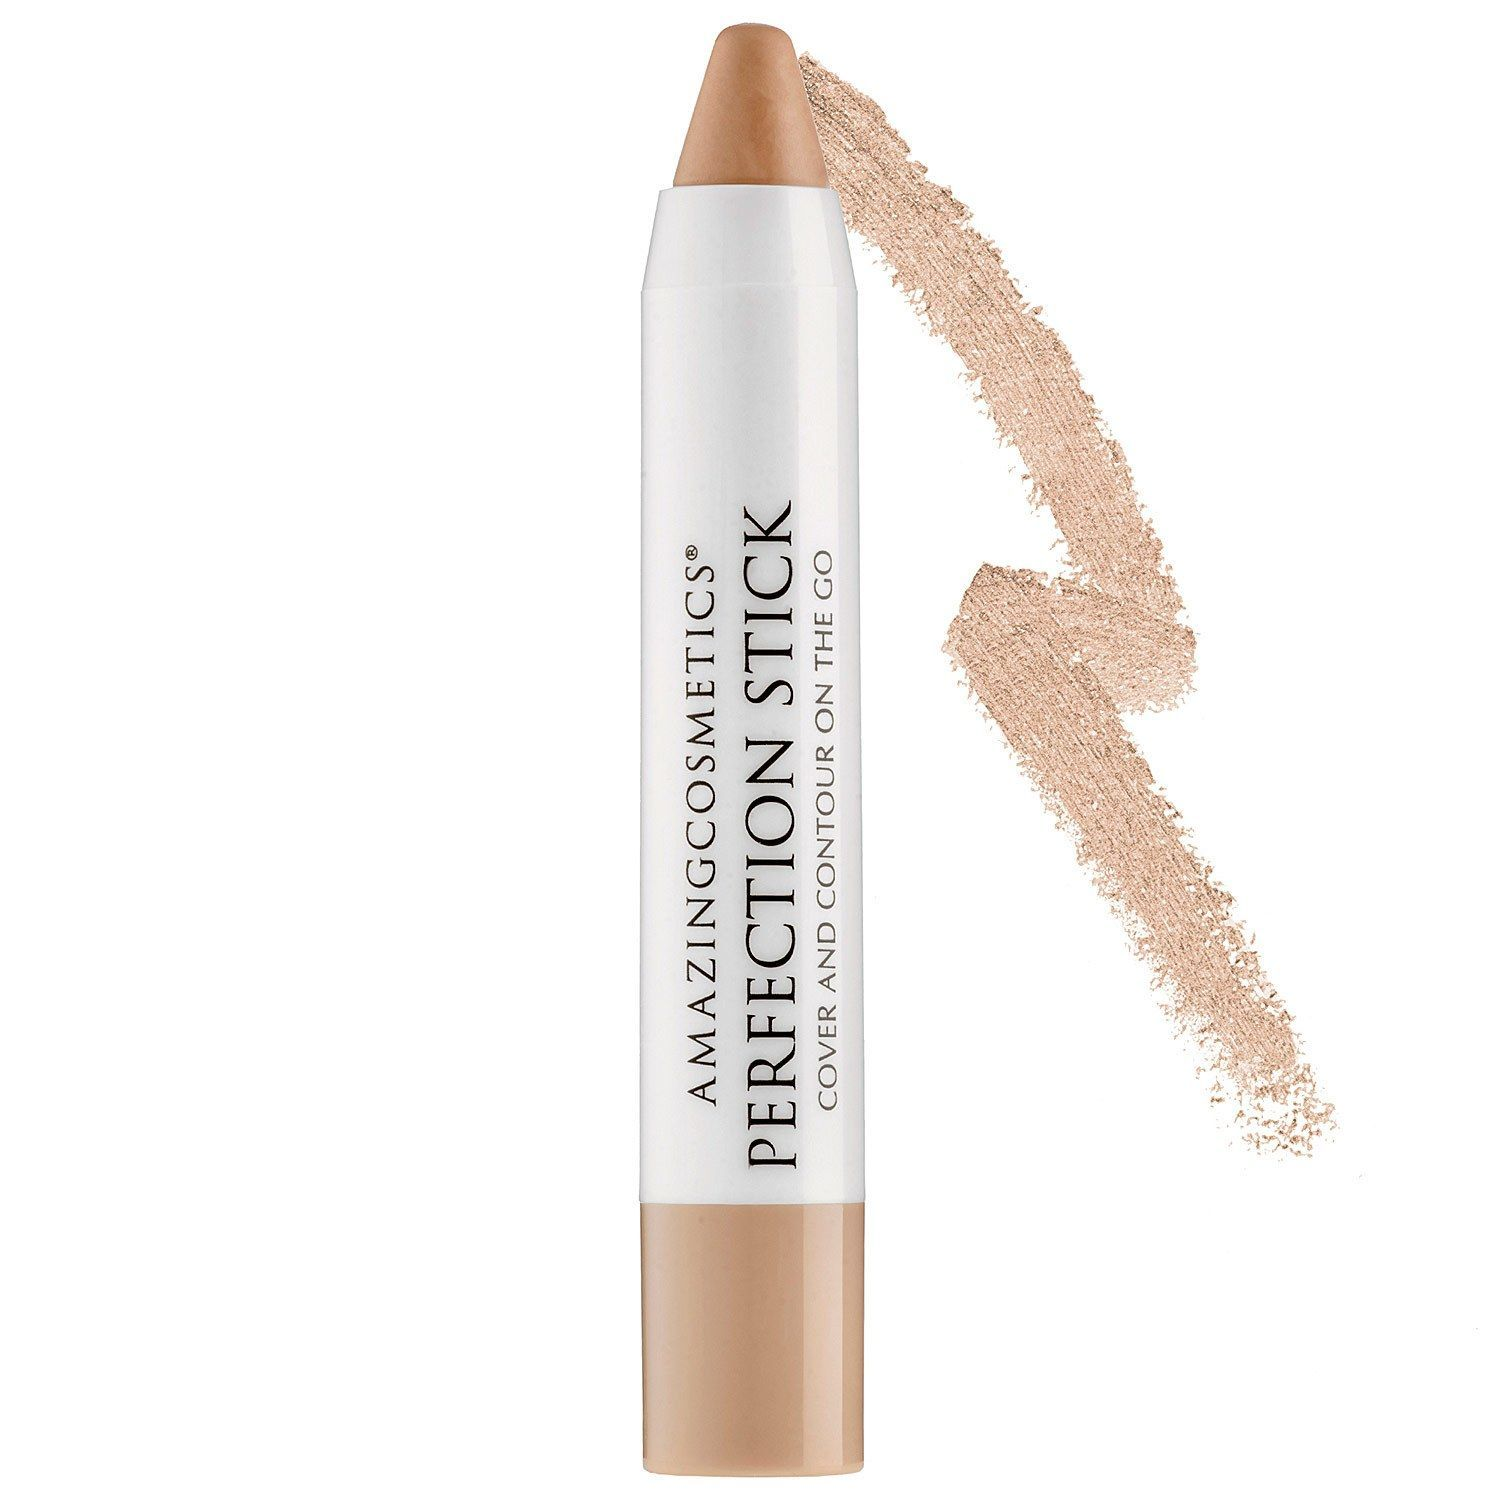 20 SkinPerfecting Concealers With Insane Sephora Reviews